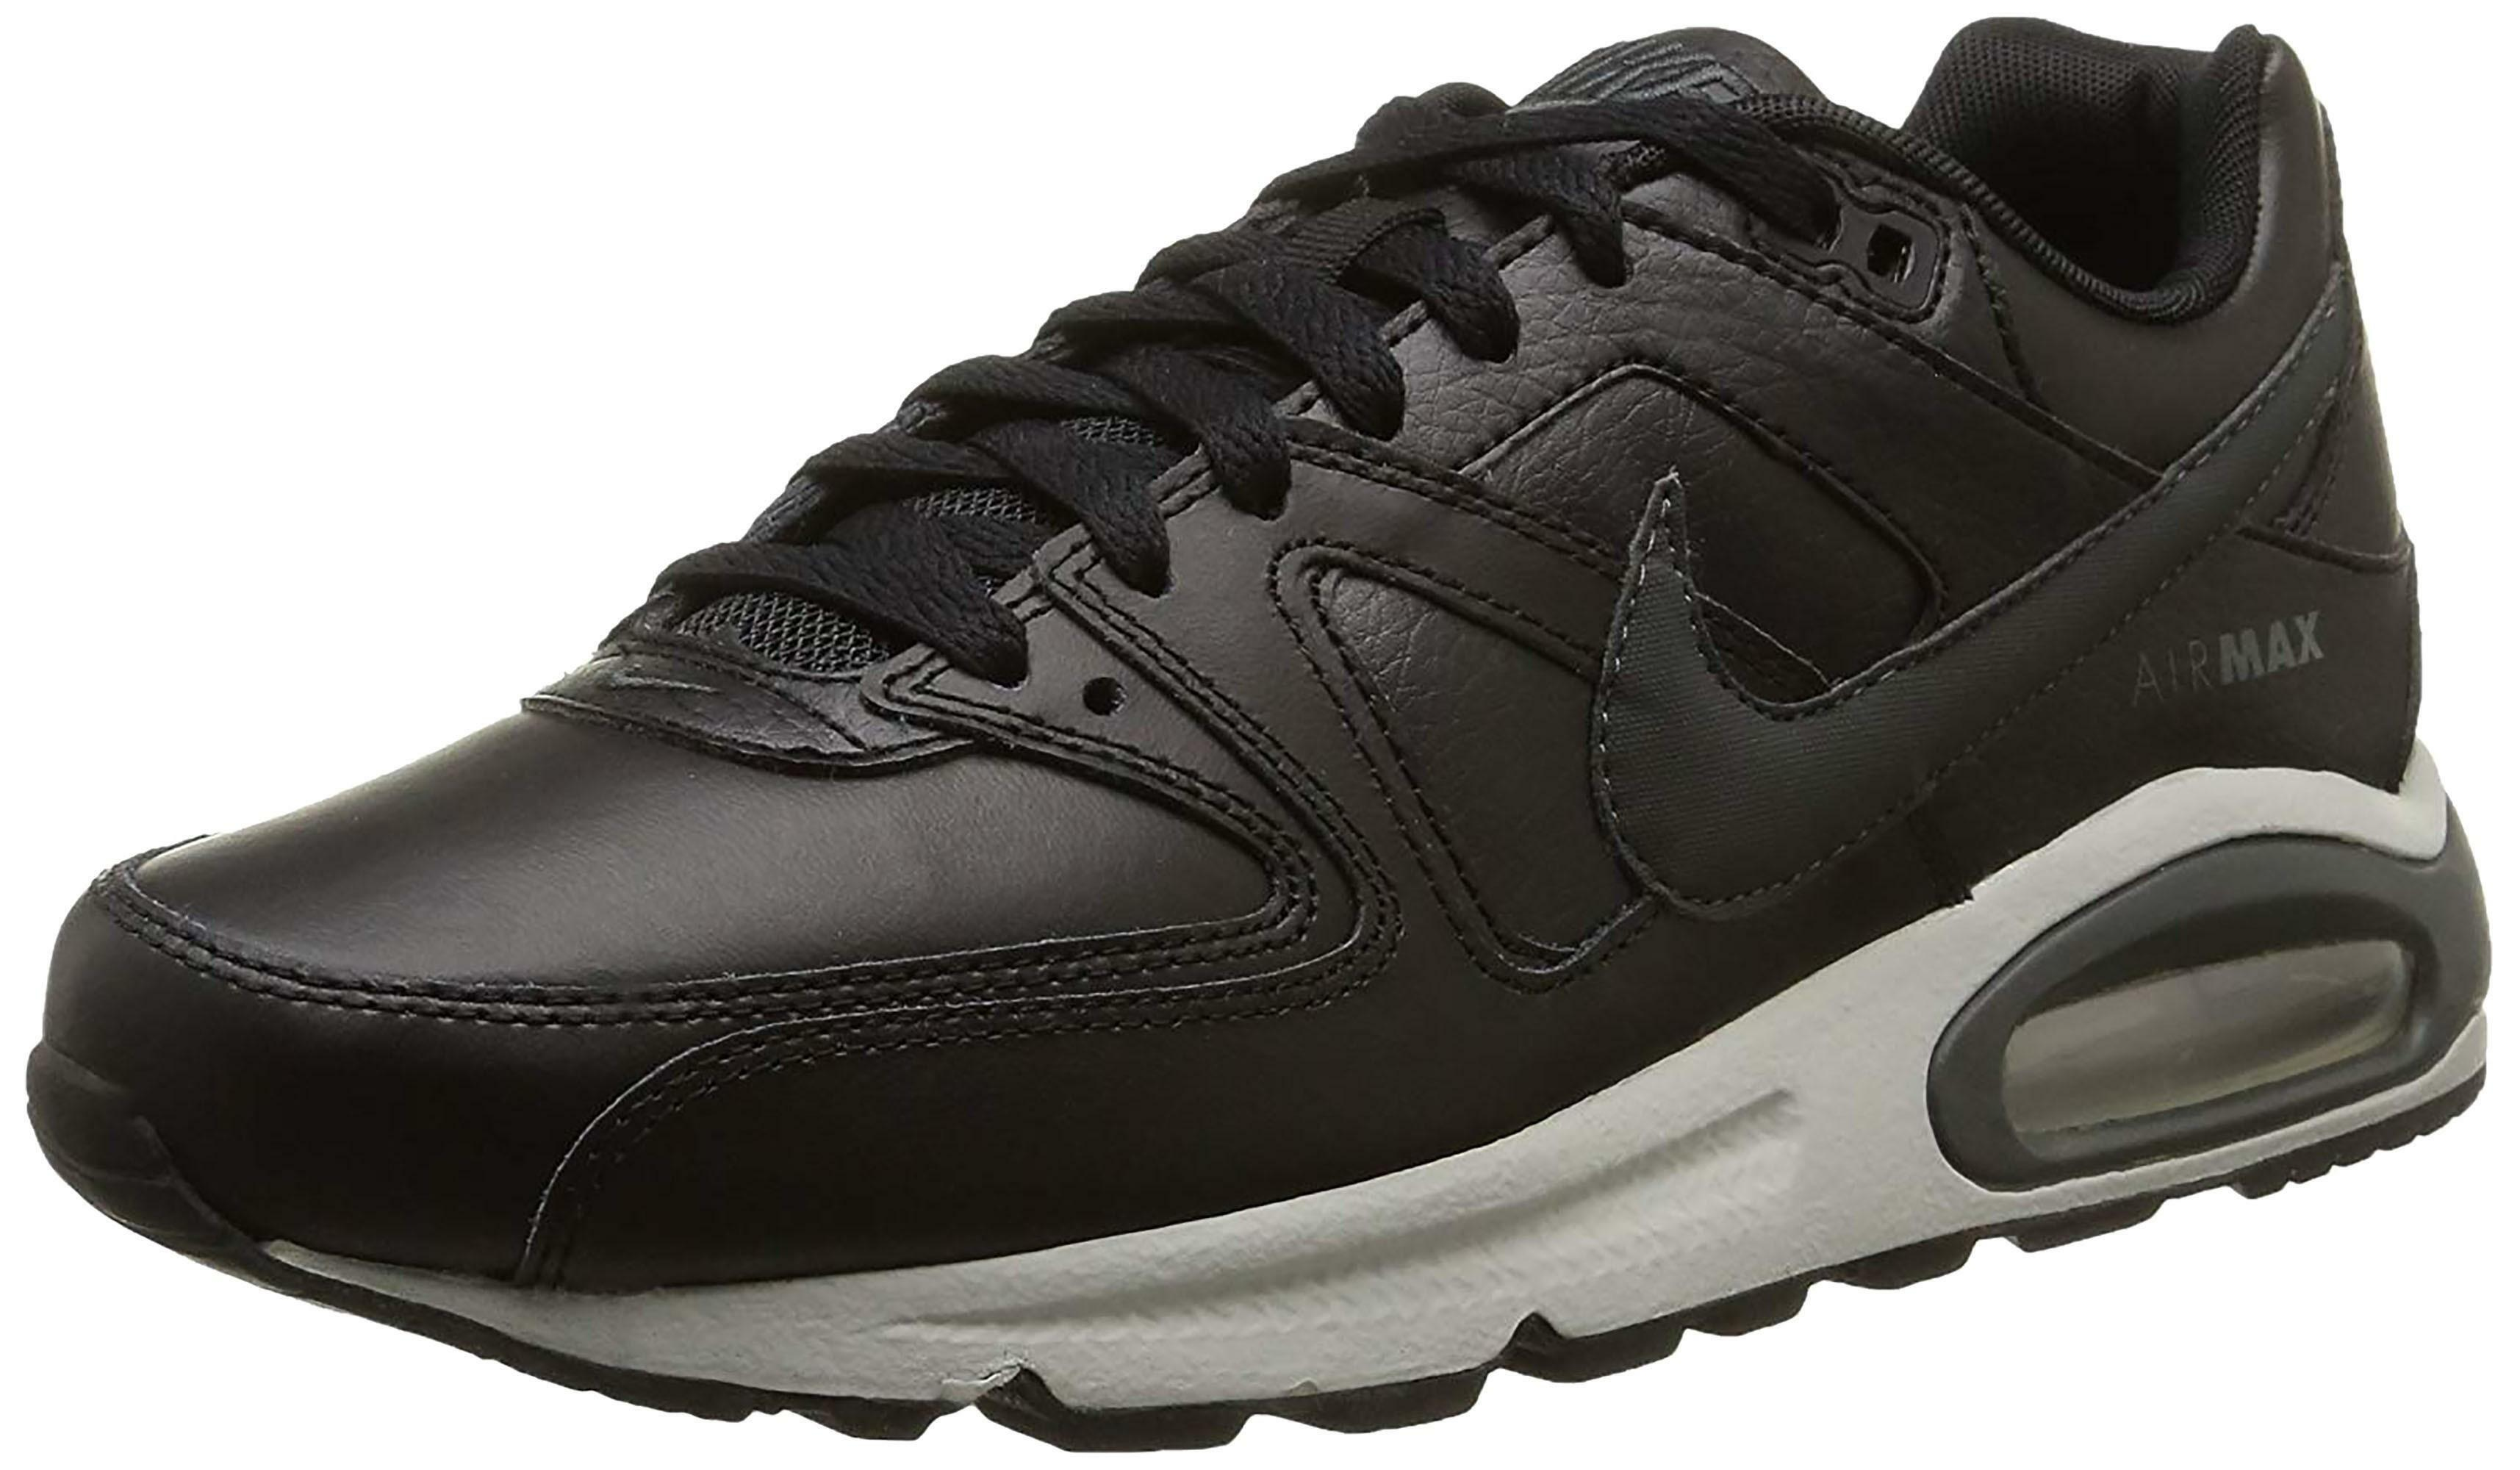 online retailer 50040 3fedf Image is loading NIKE-AIR-MAX-COMMAND-LEATHER-SCARPE-SPORTIVE-UOMO-